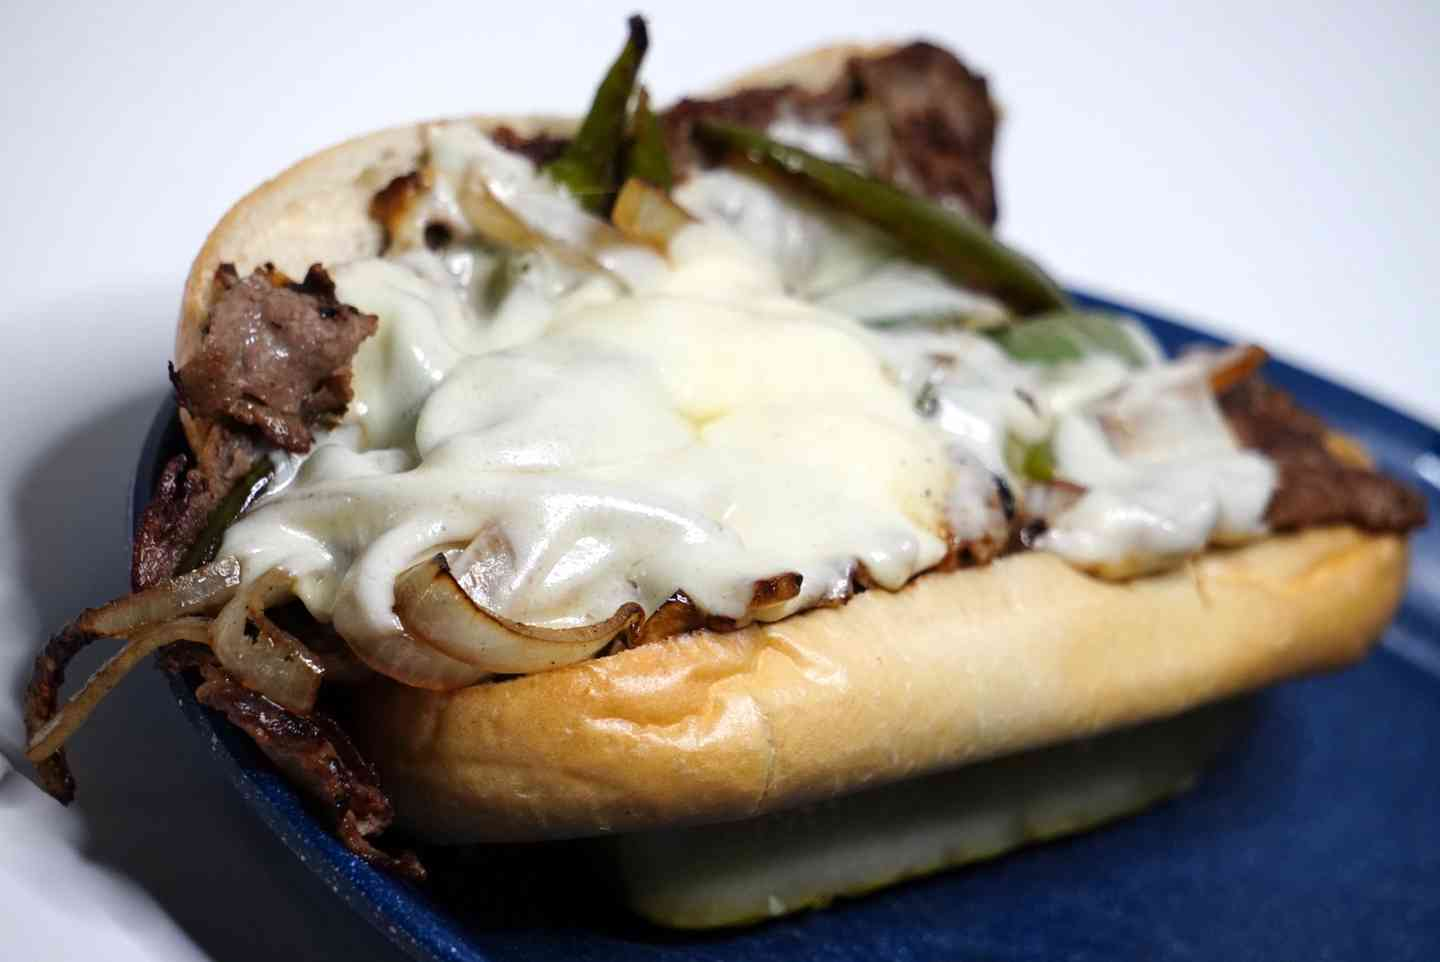 South Philly Cheesesteak